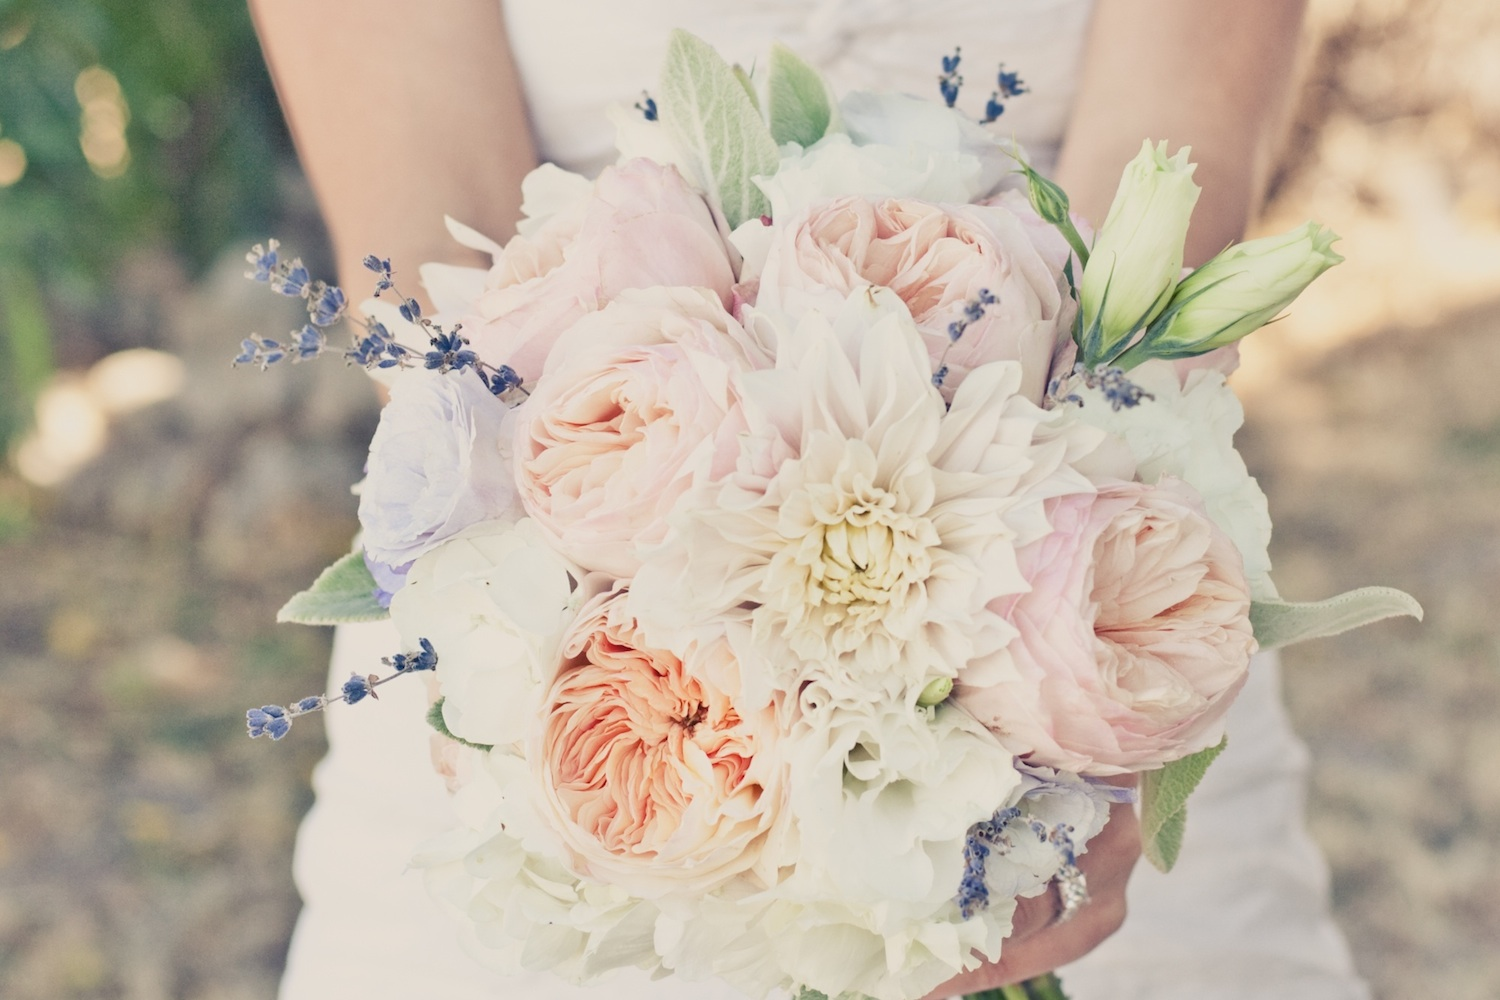 Bridal Bouquet With Color : Elegant real weddings lavender peach wedding colors